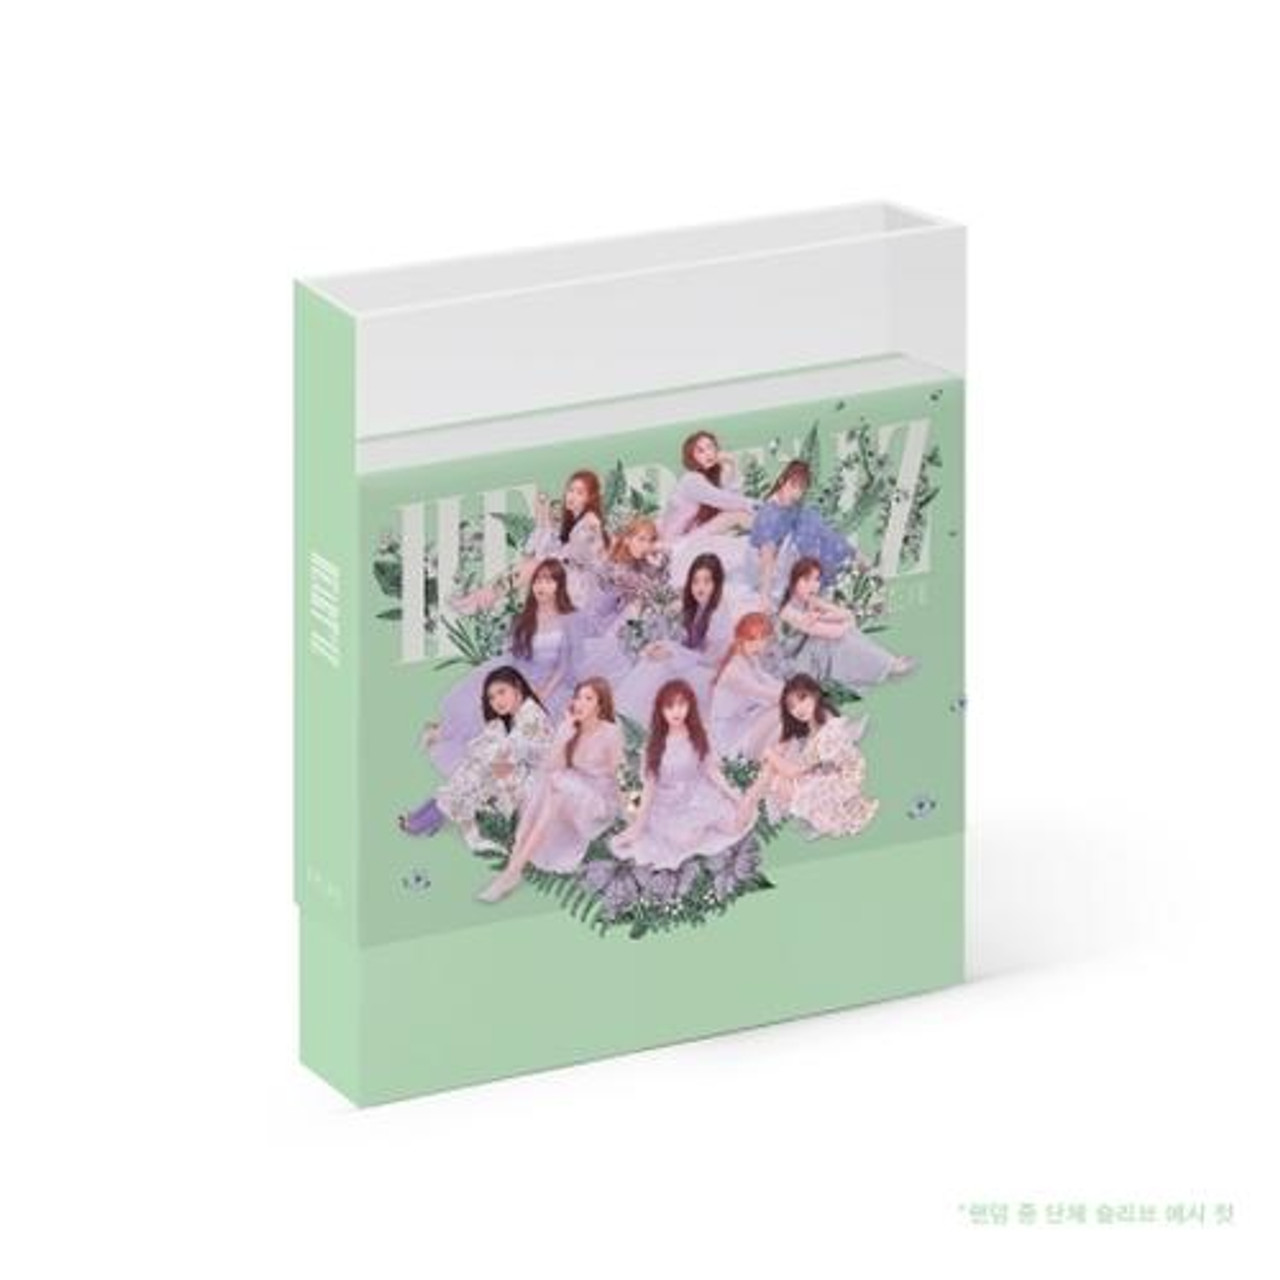 IZ*ONE - 2nd Mini [HEART*IZ] (A: Violeta/ B:SapphireVer.) + Poster